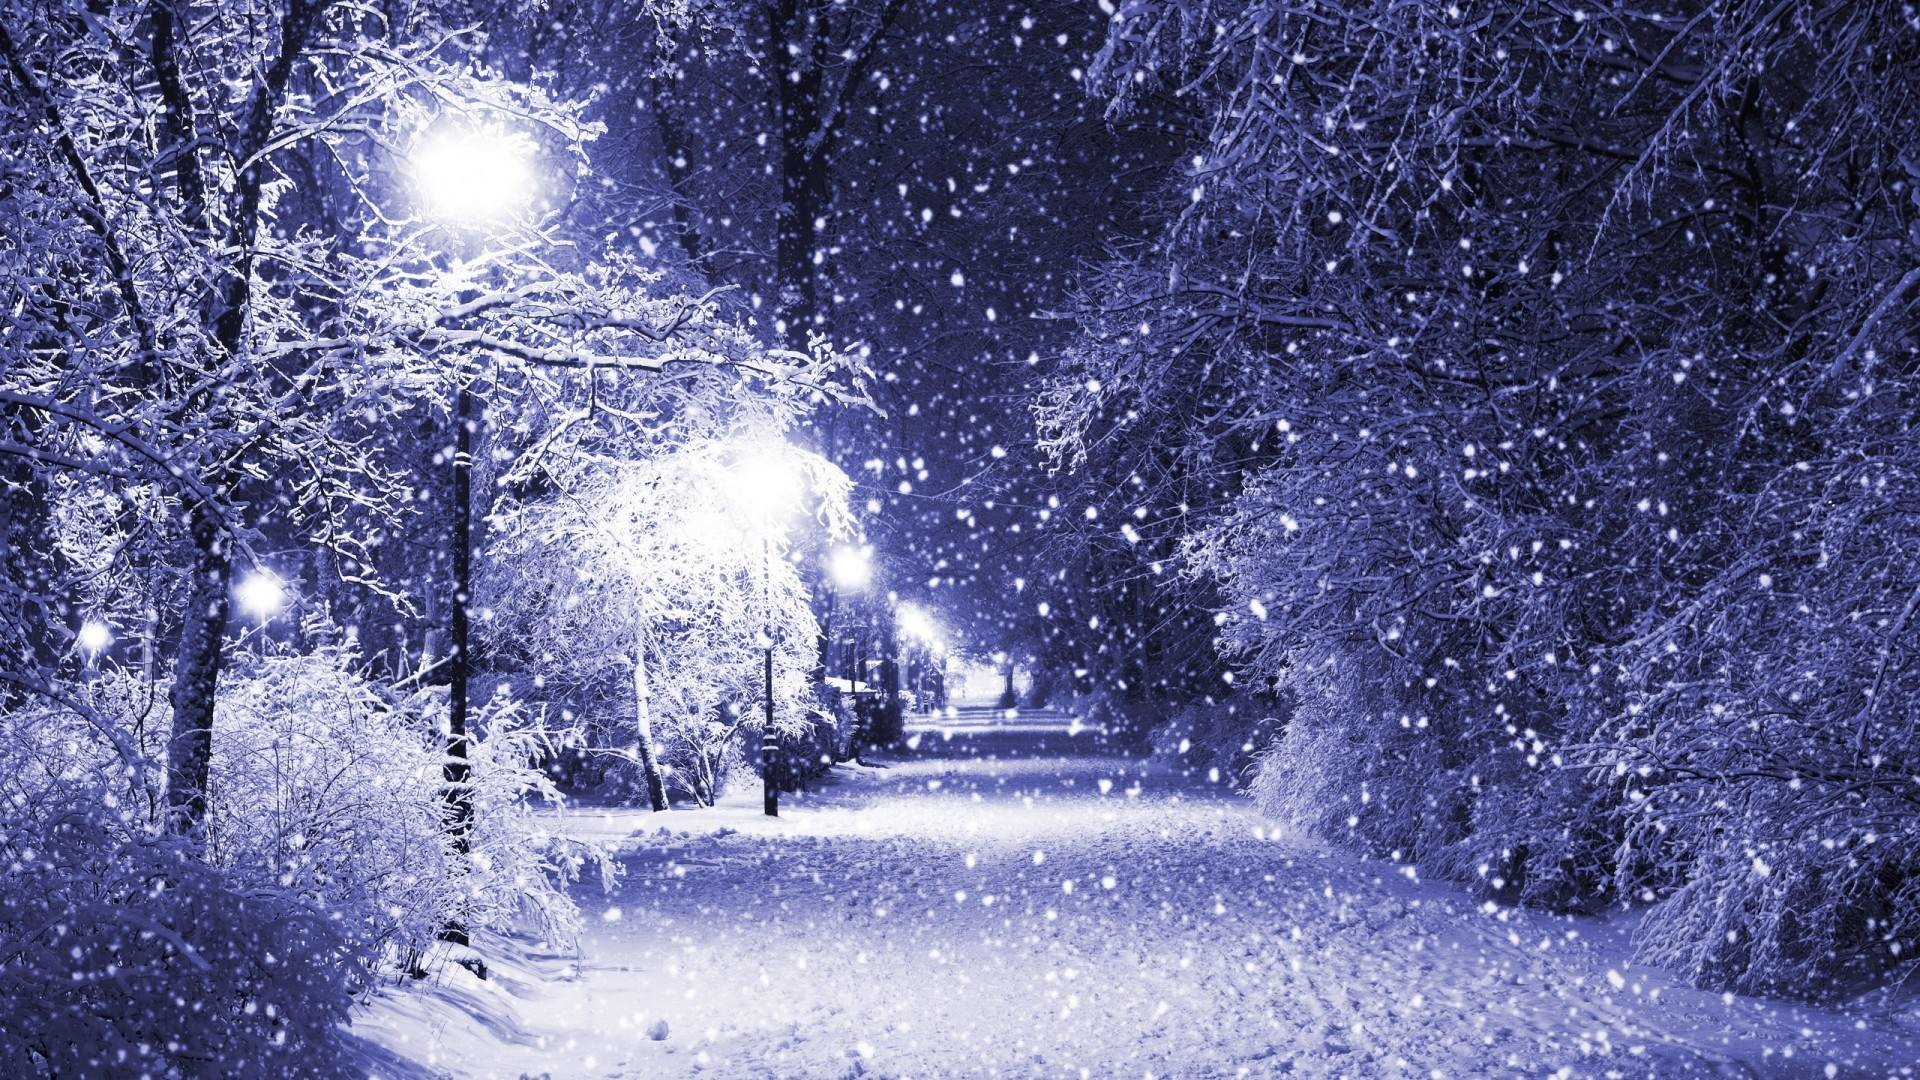 Res: 1920x1080, Snowfall on the Street Wallpaper | warnerboutique